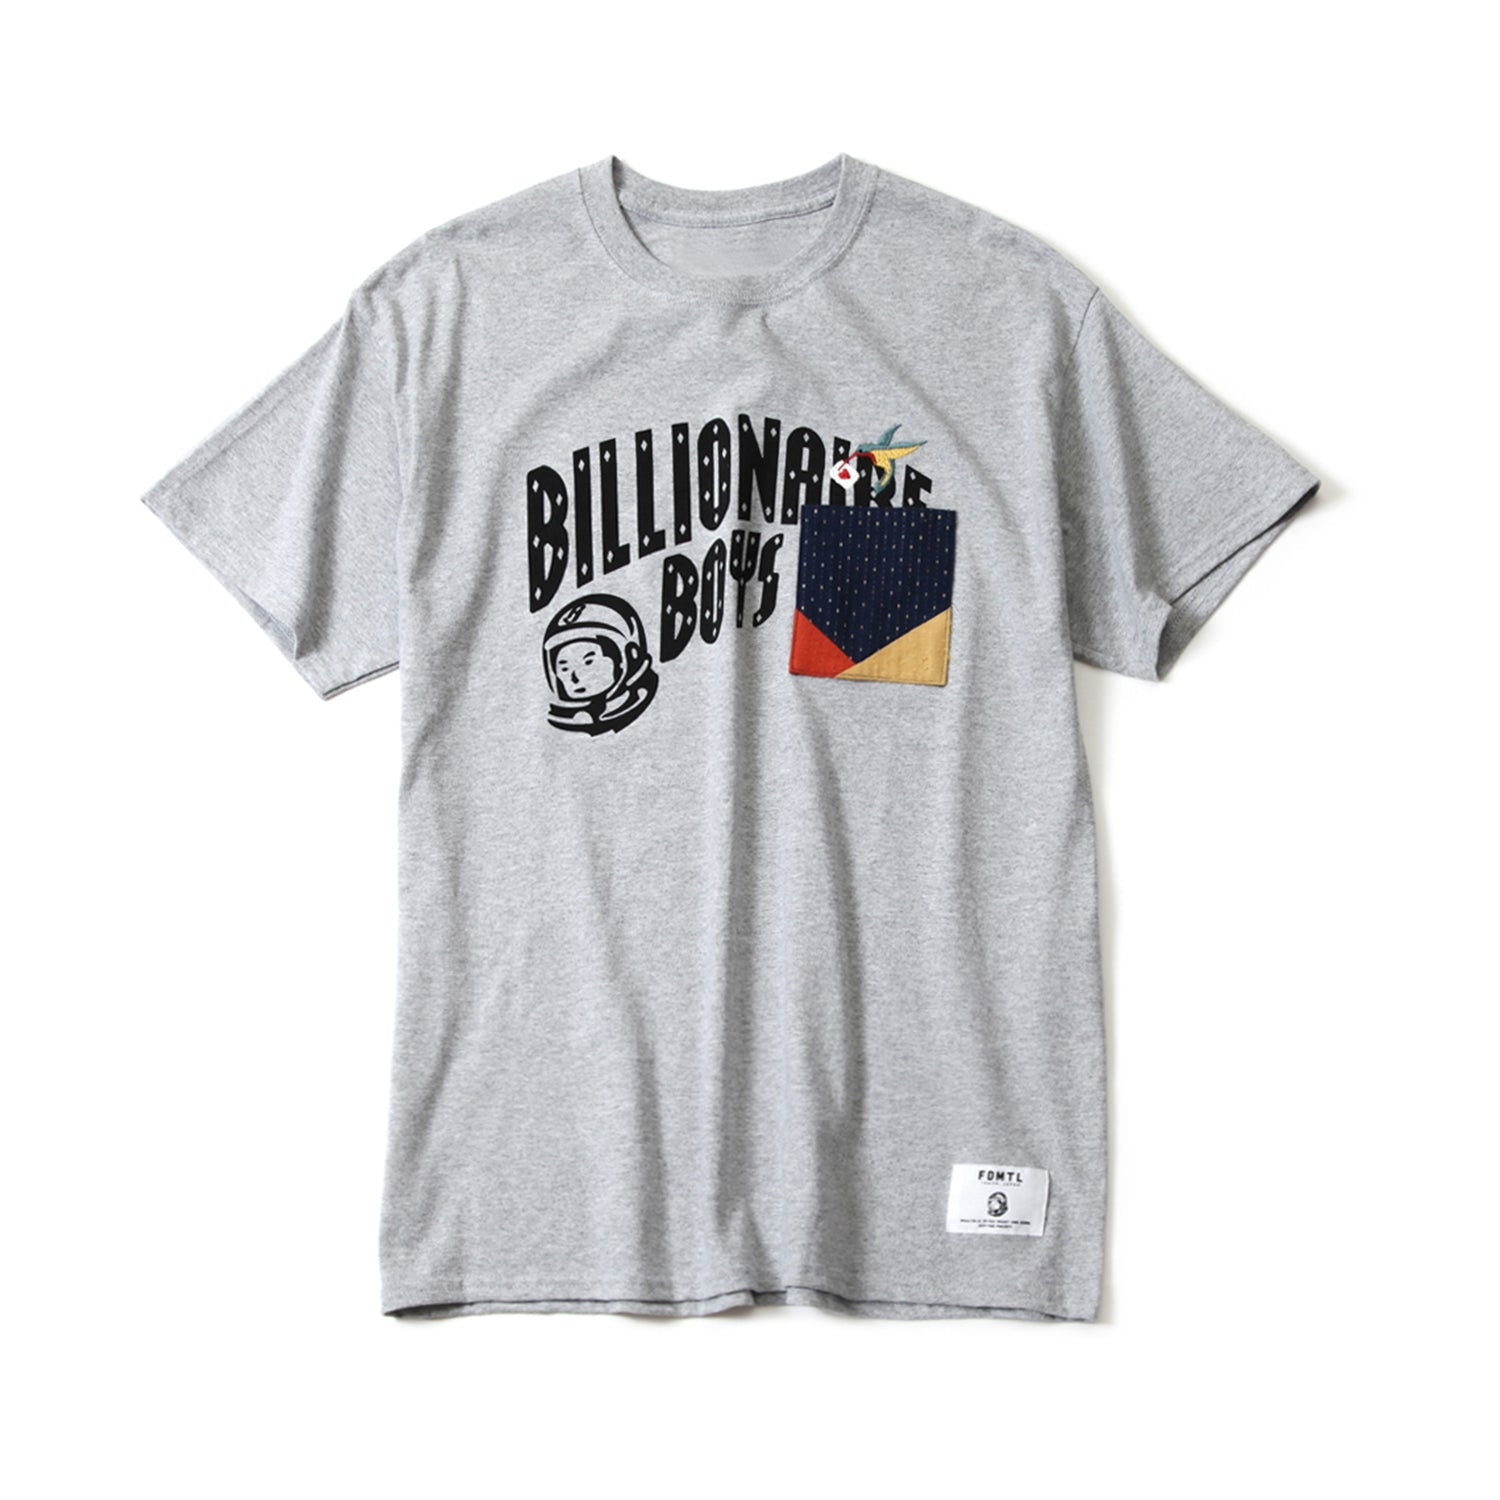 BBC X FDMTL POCKET T-SHIRT